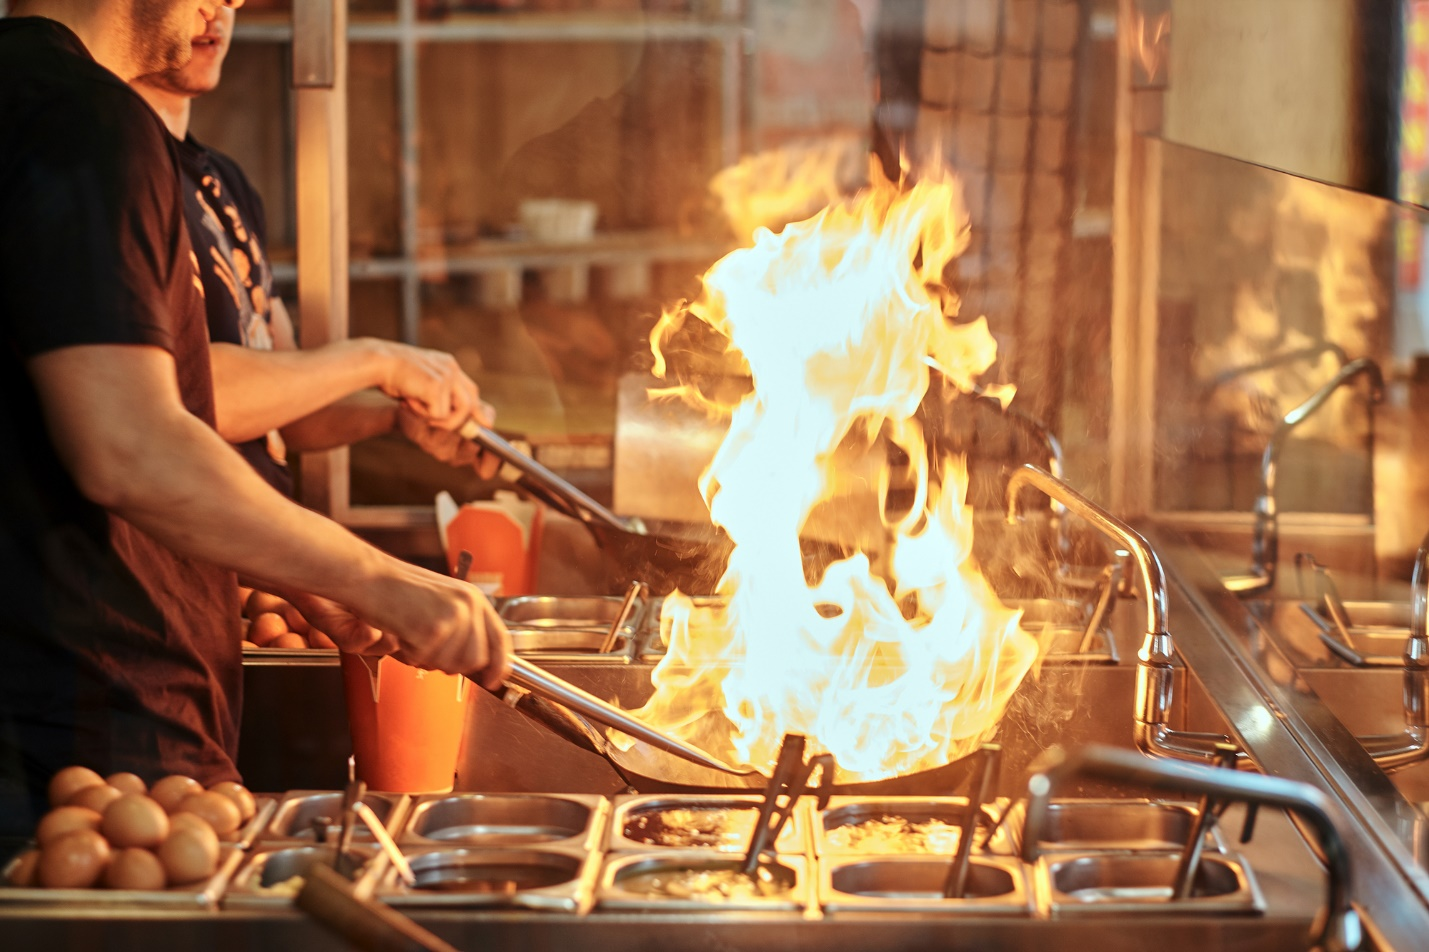 A picture containing person, indoor, cooking, nature  Description automatically generated